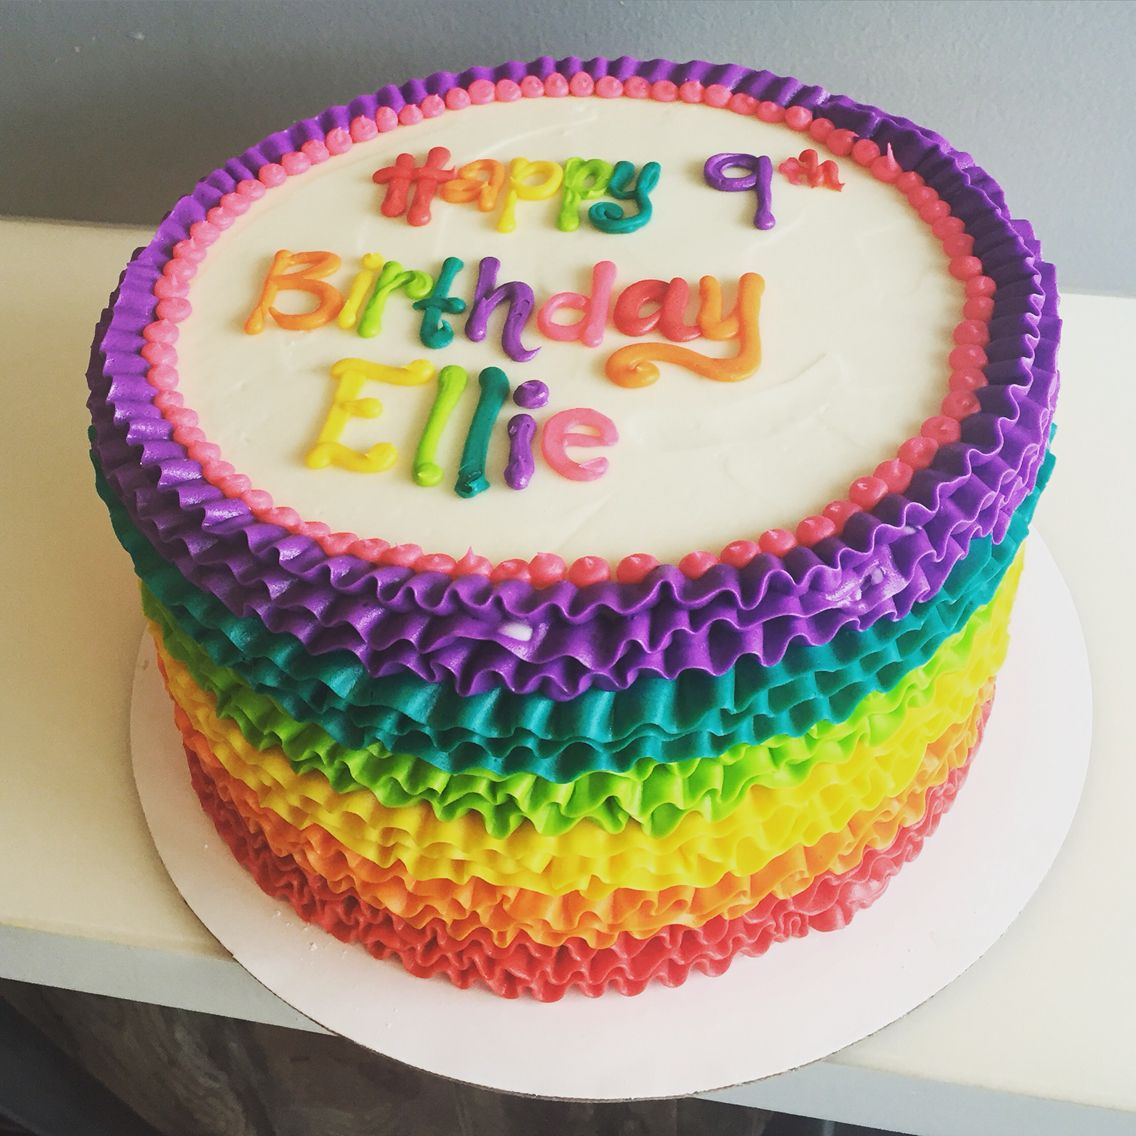 Pleasant Signature Rainbow Ruffle Cake By Hayleycakes And Cookies Cake Funny Birthday Cards Online Barepcheapnameinfo